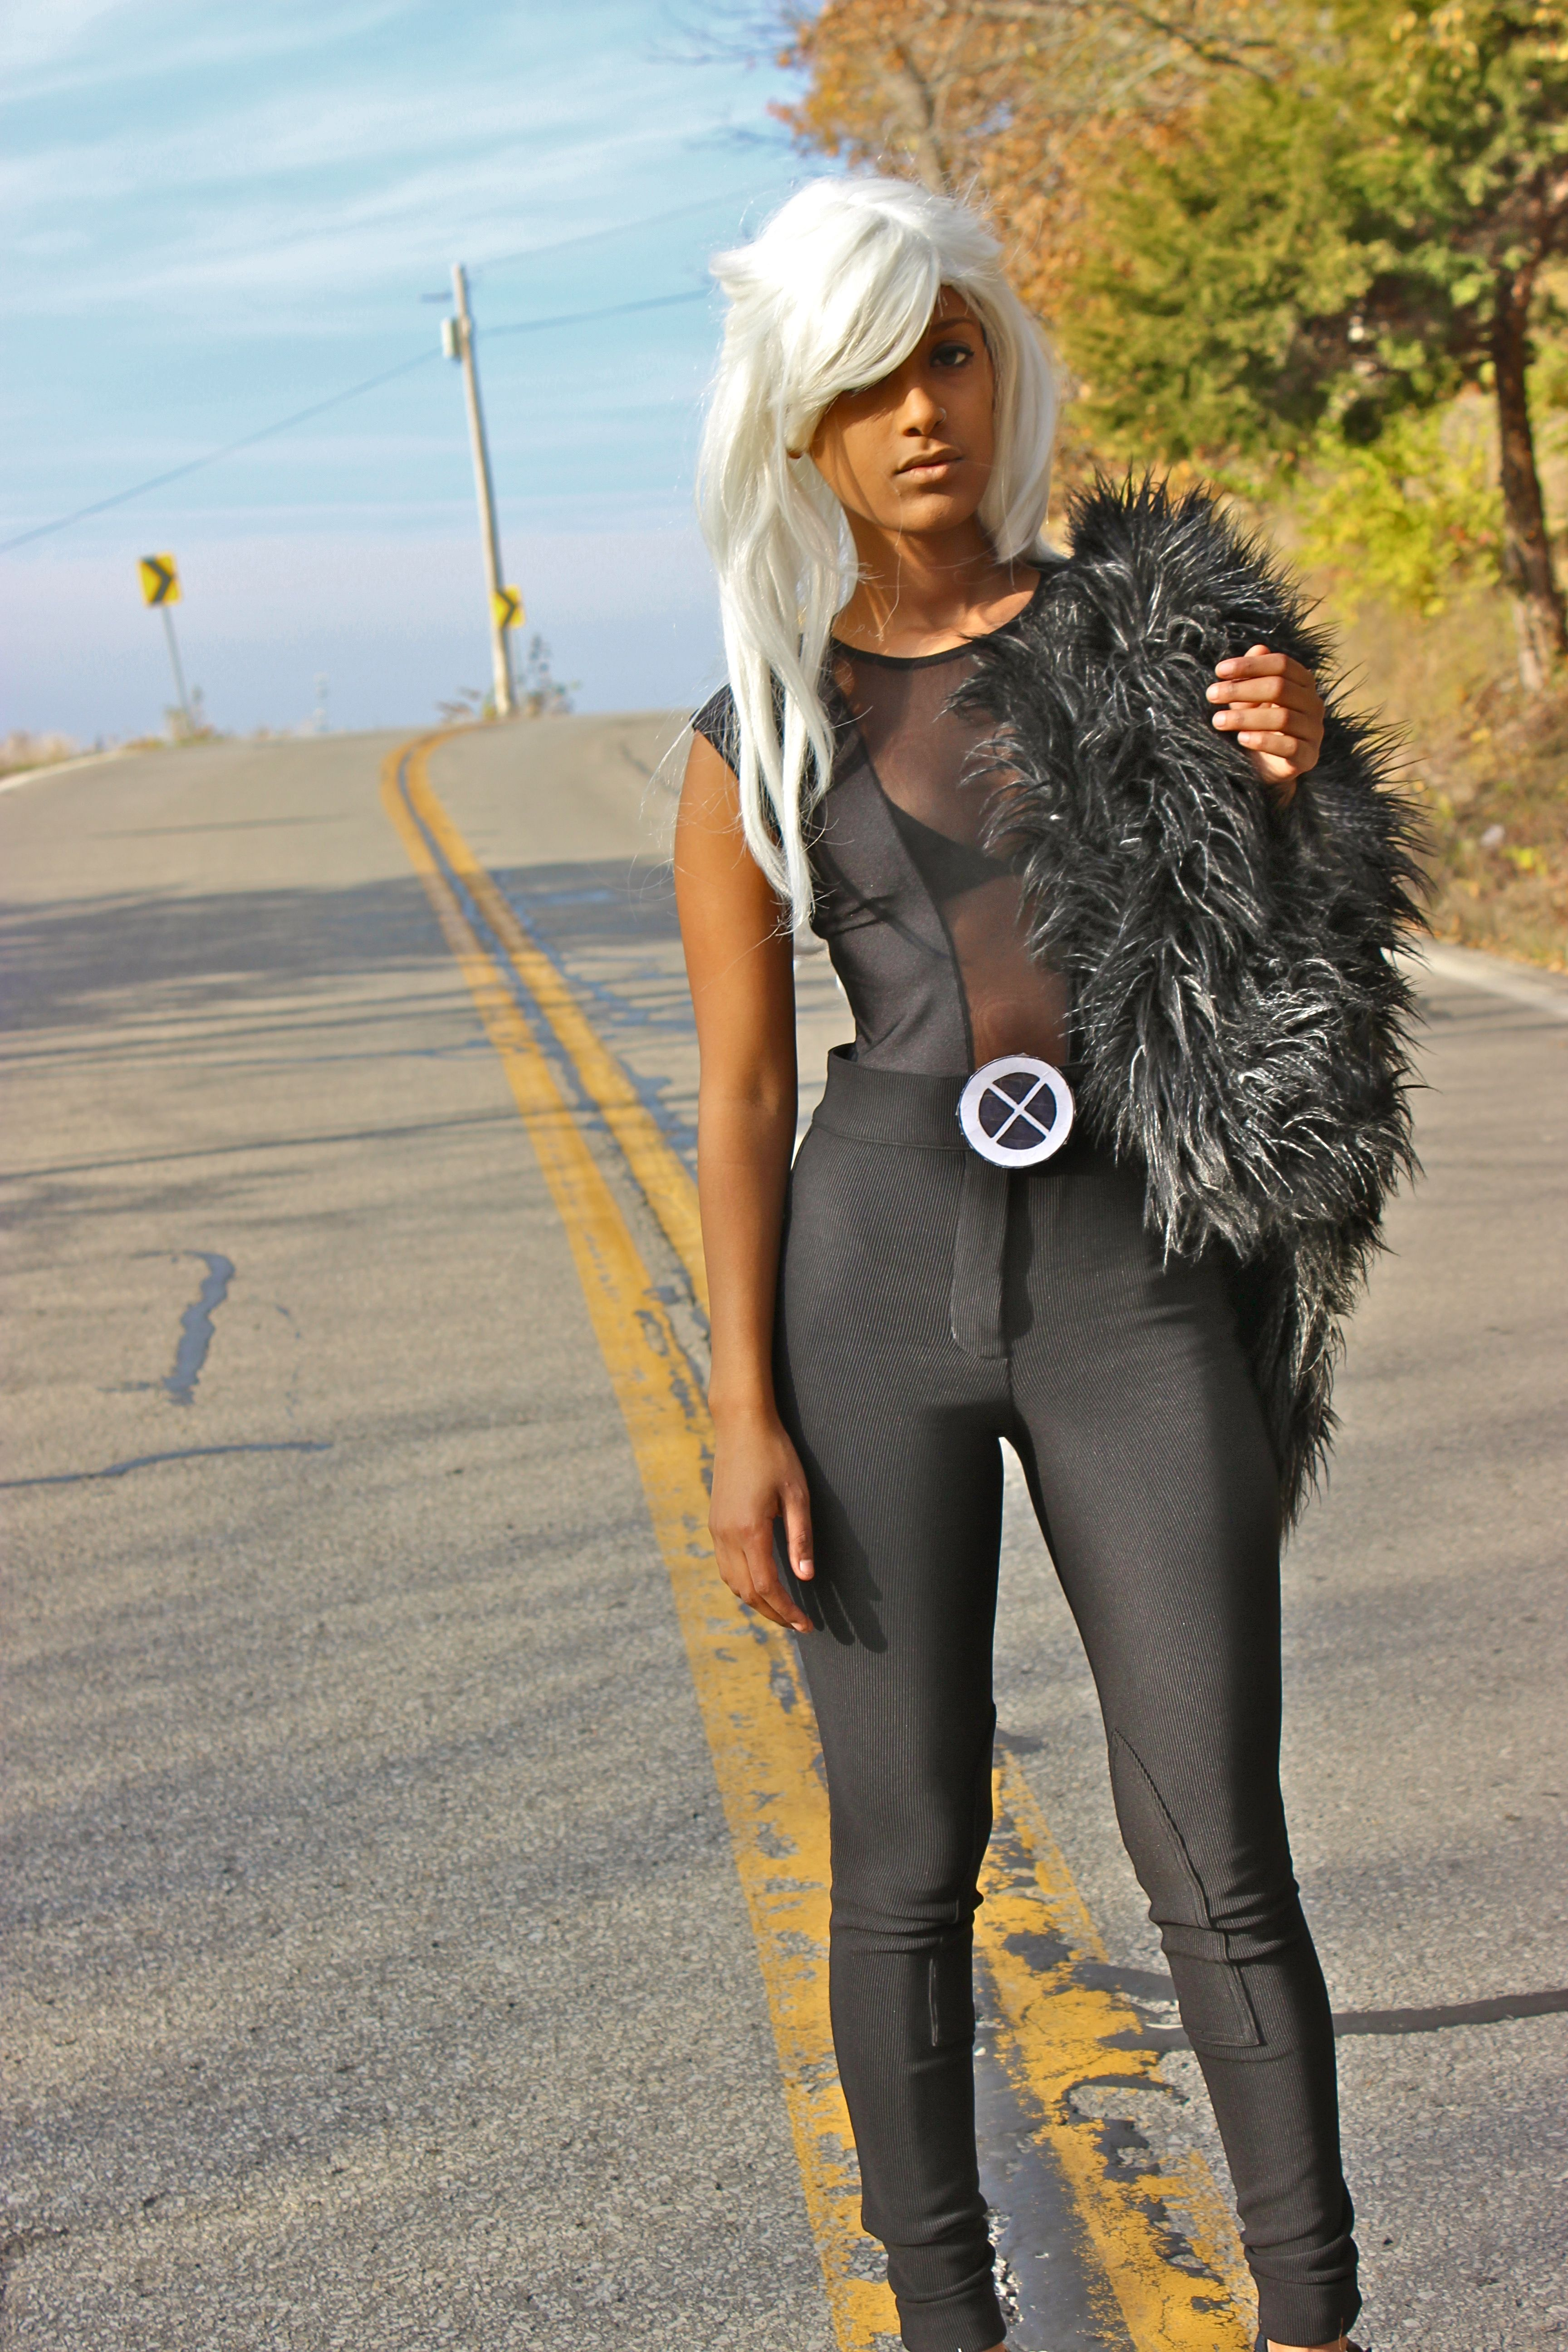 Storm costume image by Alex Hull on Cosplay ideas | Diy ...